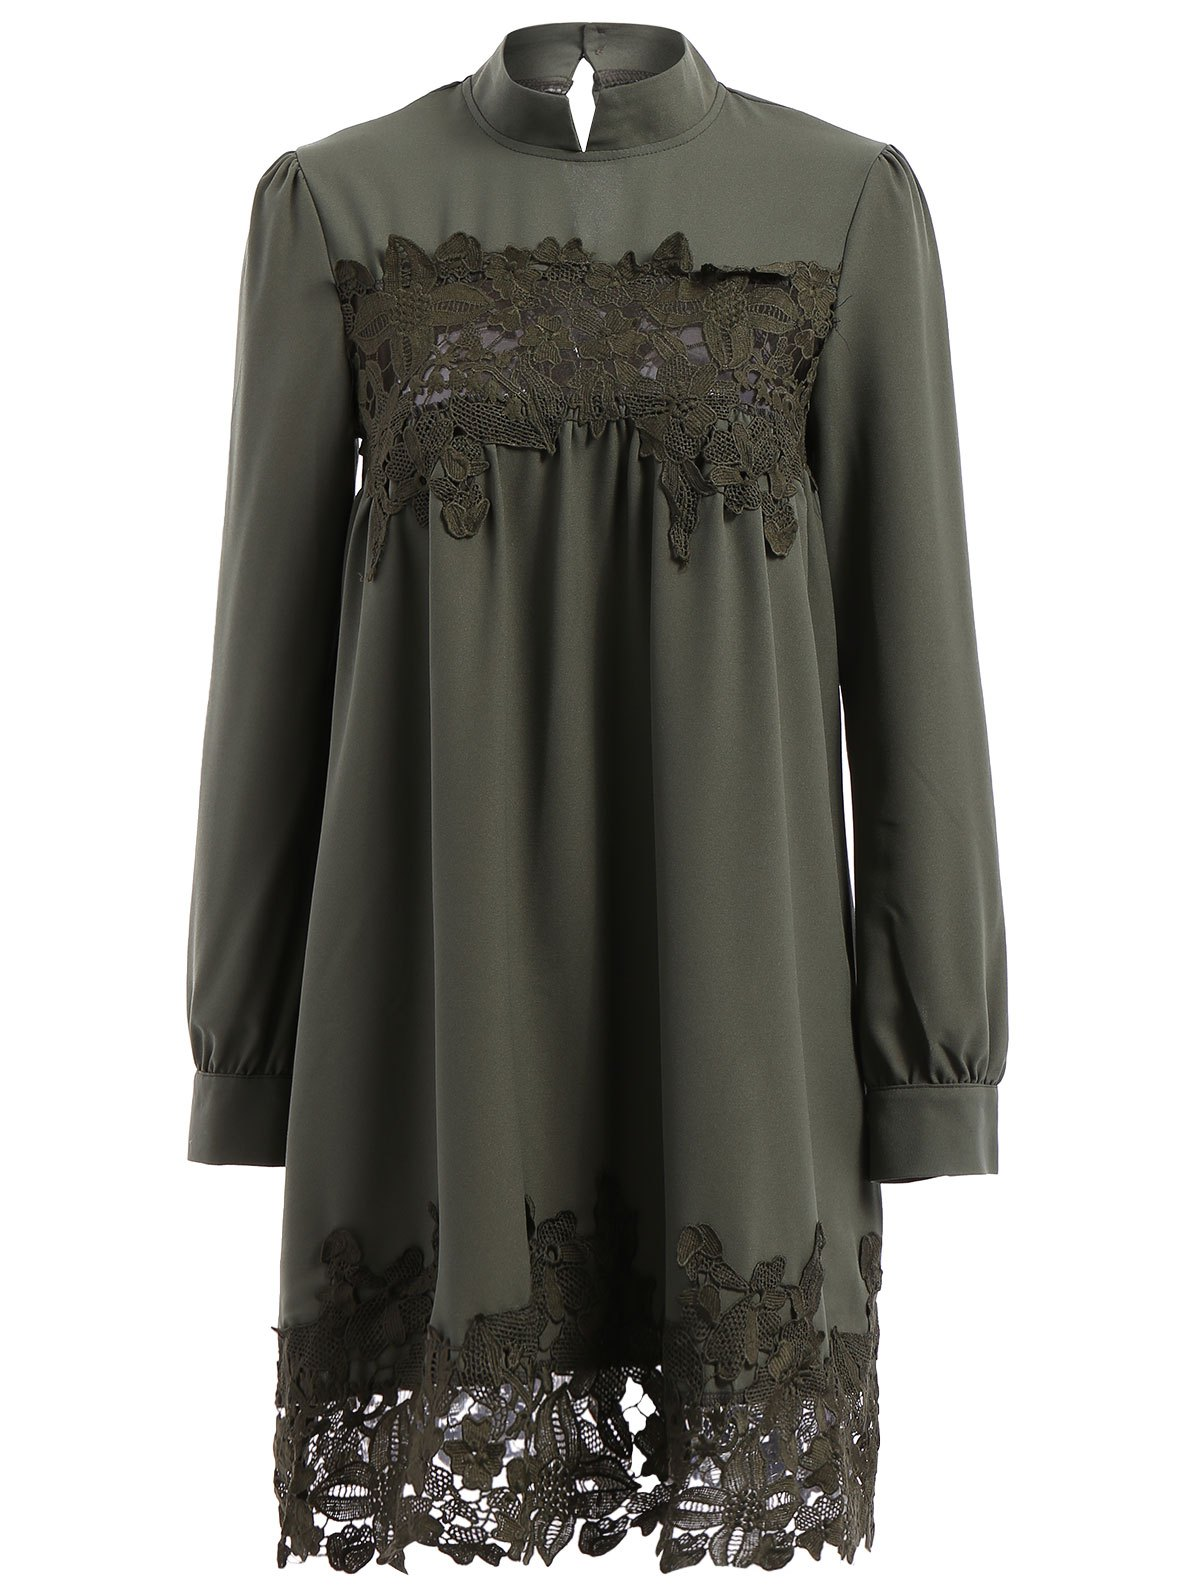 Retro Style Long Sleeve Stand Collar Lace Spliced Women's Dress - ARMY GREEN L